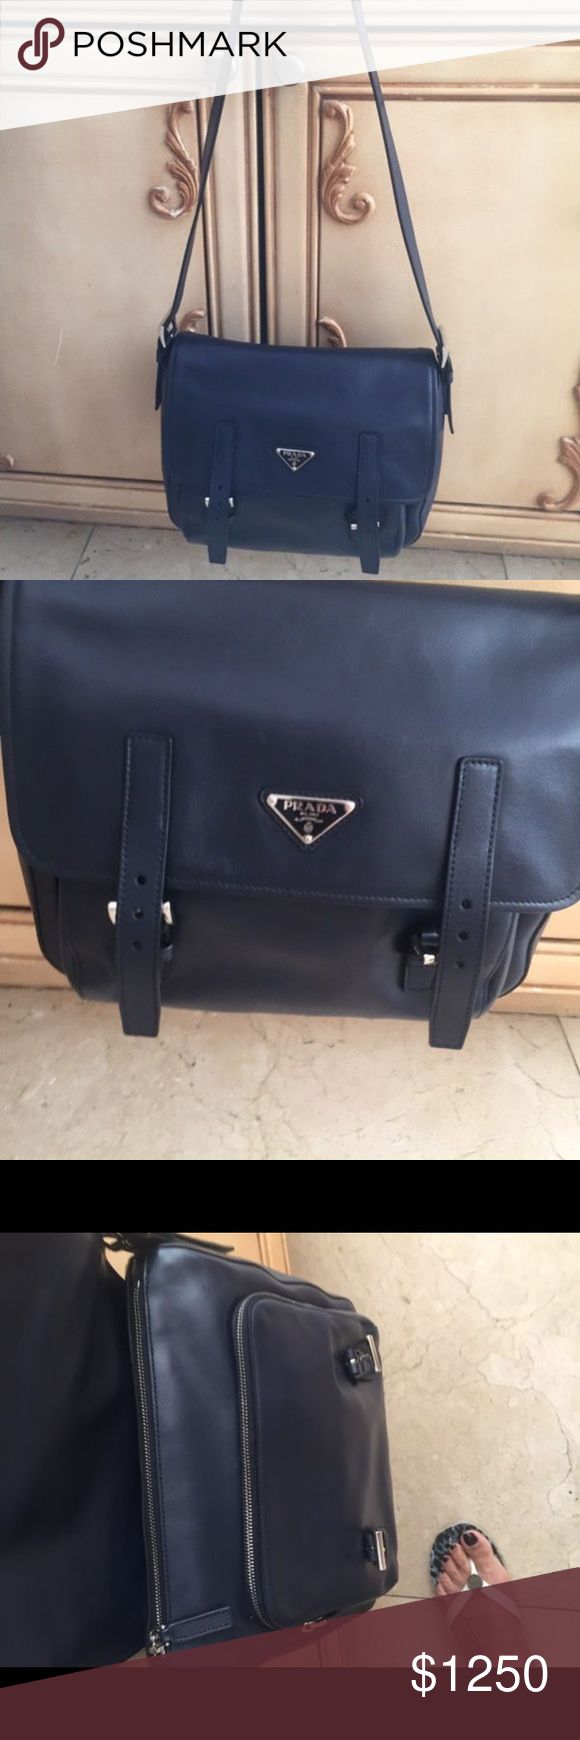 Prada Cross body Satchel Purse Brand new navy Prada cross body satchel purse with zipper and buckle flap. Brand new, never been worn, excellent condition. Comes with dust bag. Prada Bags Crossbody Bags